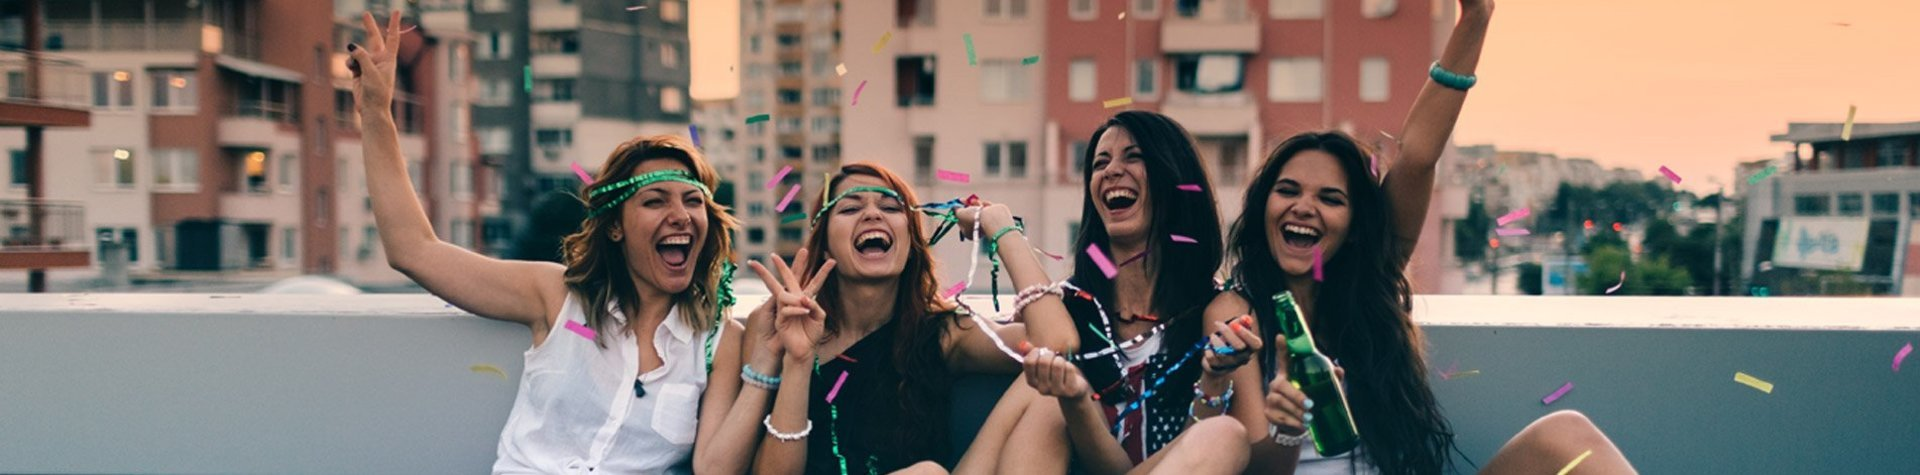 girls partying on balcony